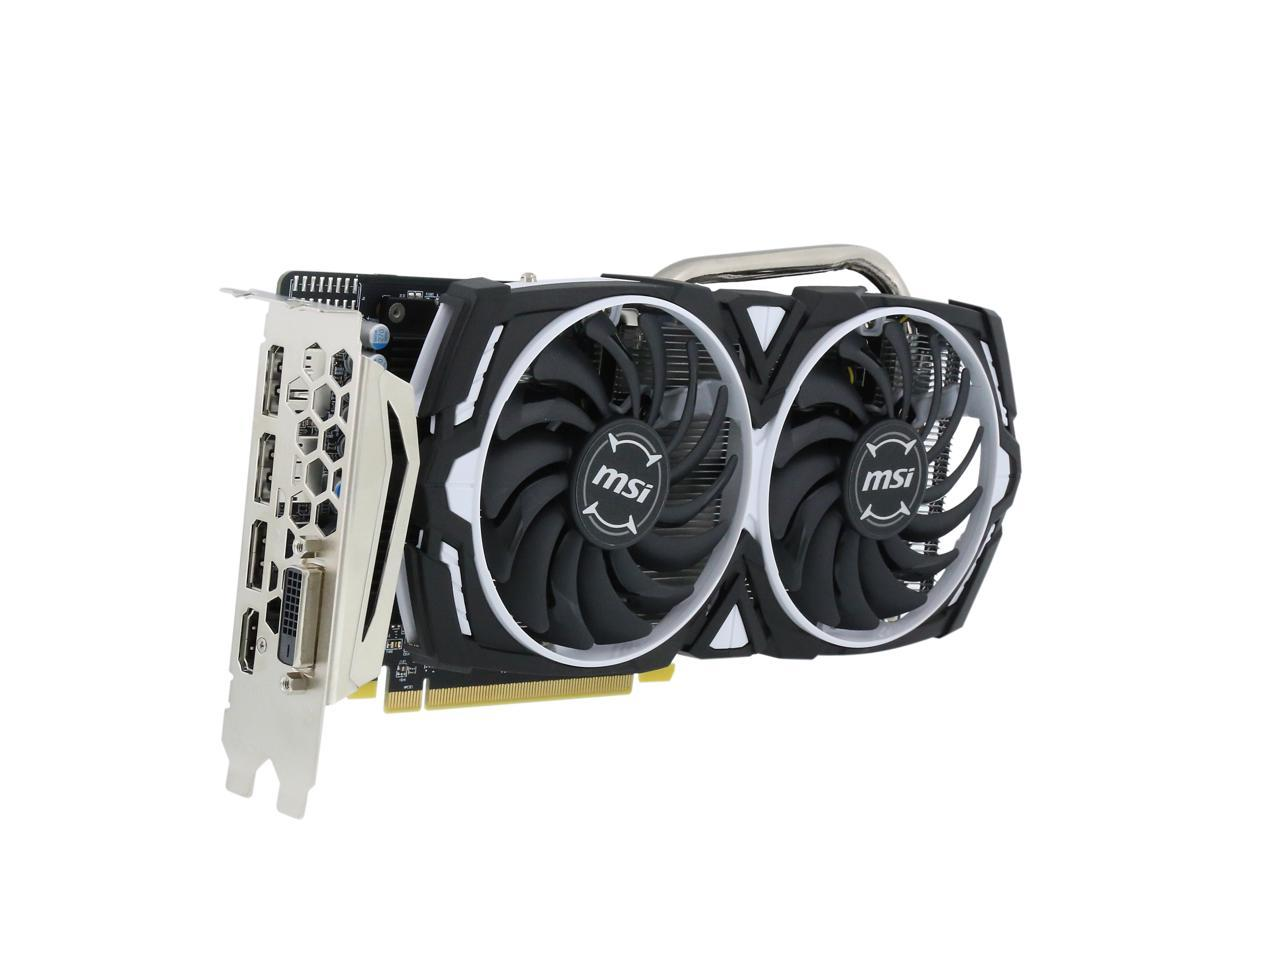 MSI Gaming Radeon Rx 570 256-bit 4GB GDRR5 Graphics Card